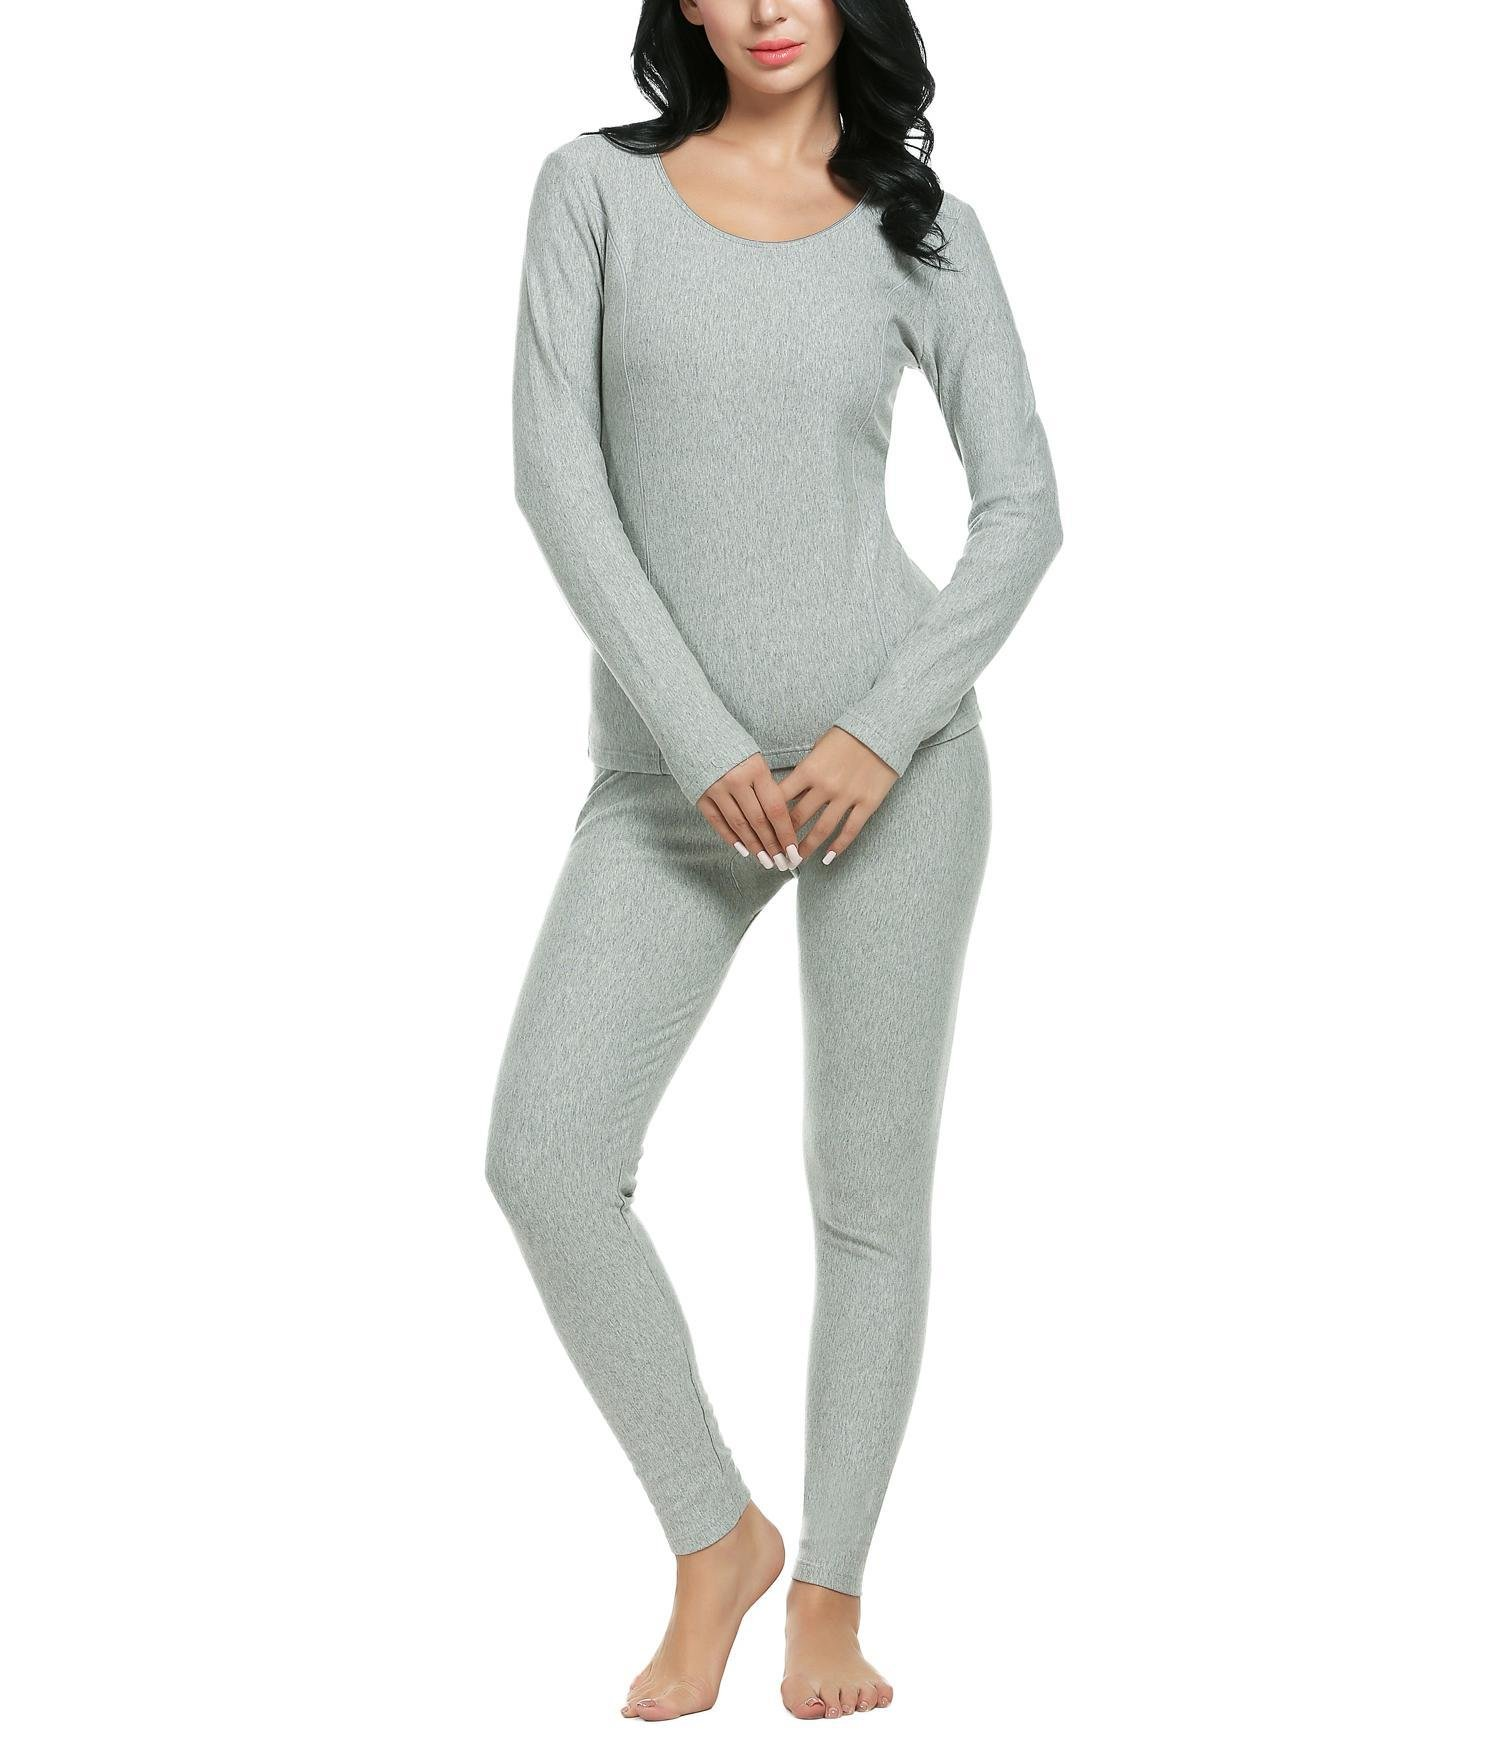 Women 2 Piece Long Sleeve Pajama Set Solid Cotton Thermal Underwear Top and Bottom (Gray S